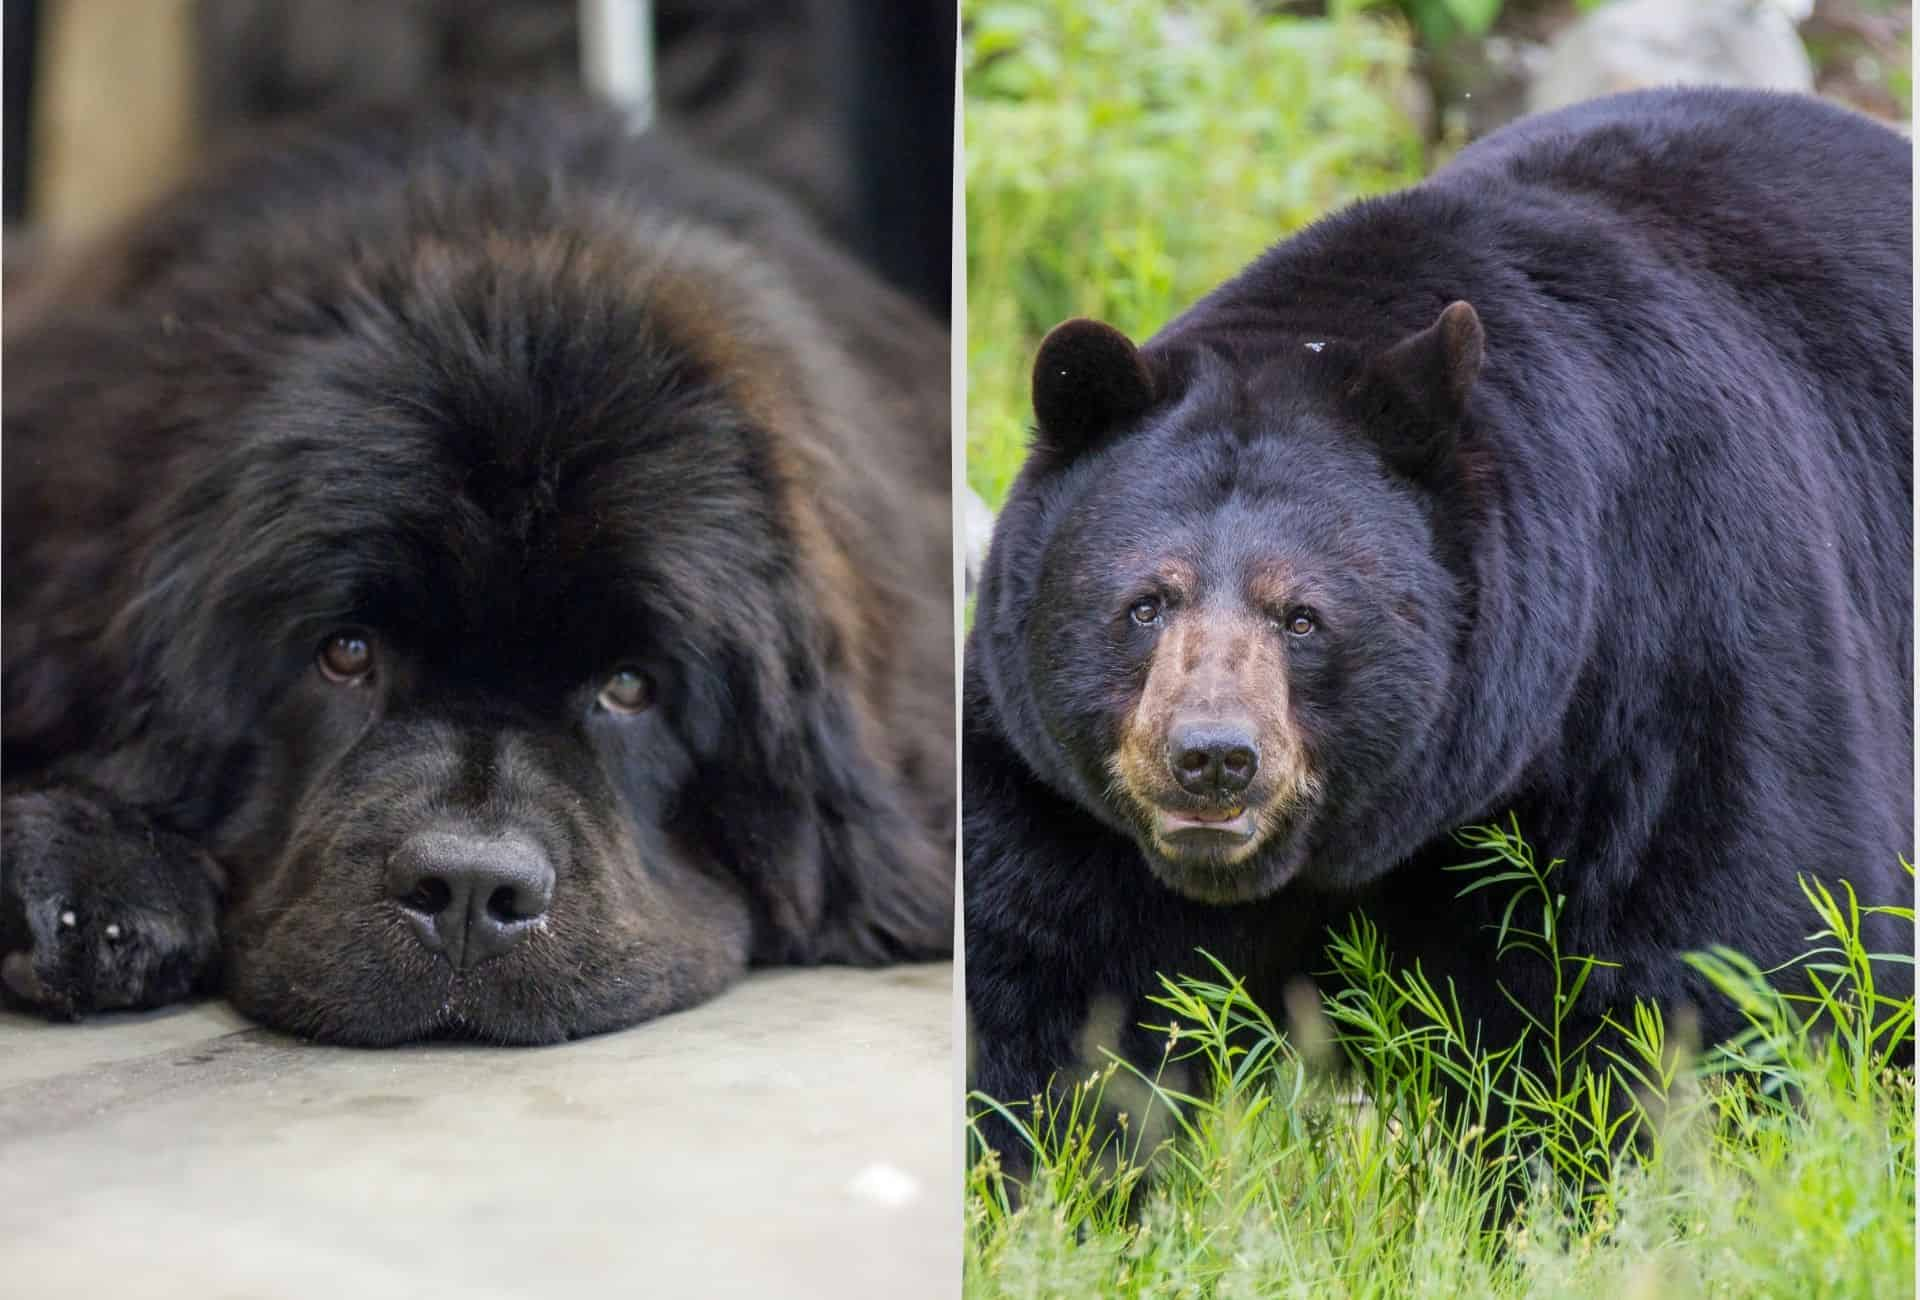 Newfoundland dog featured next to a large black bear with a similar head shape and coat.